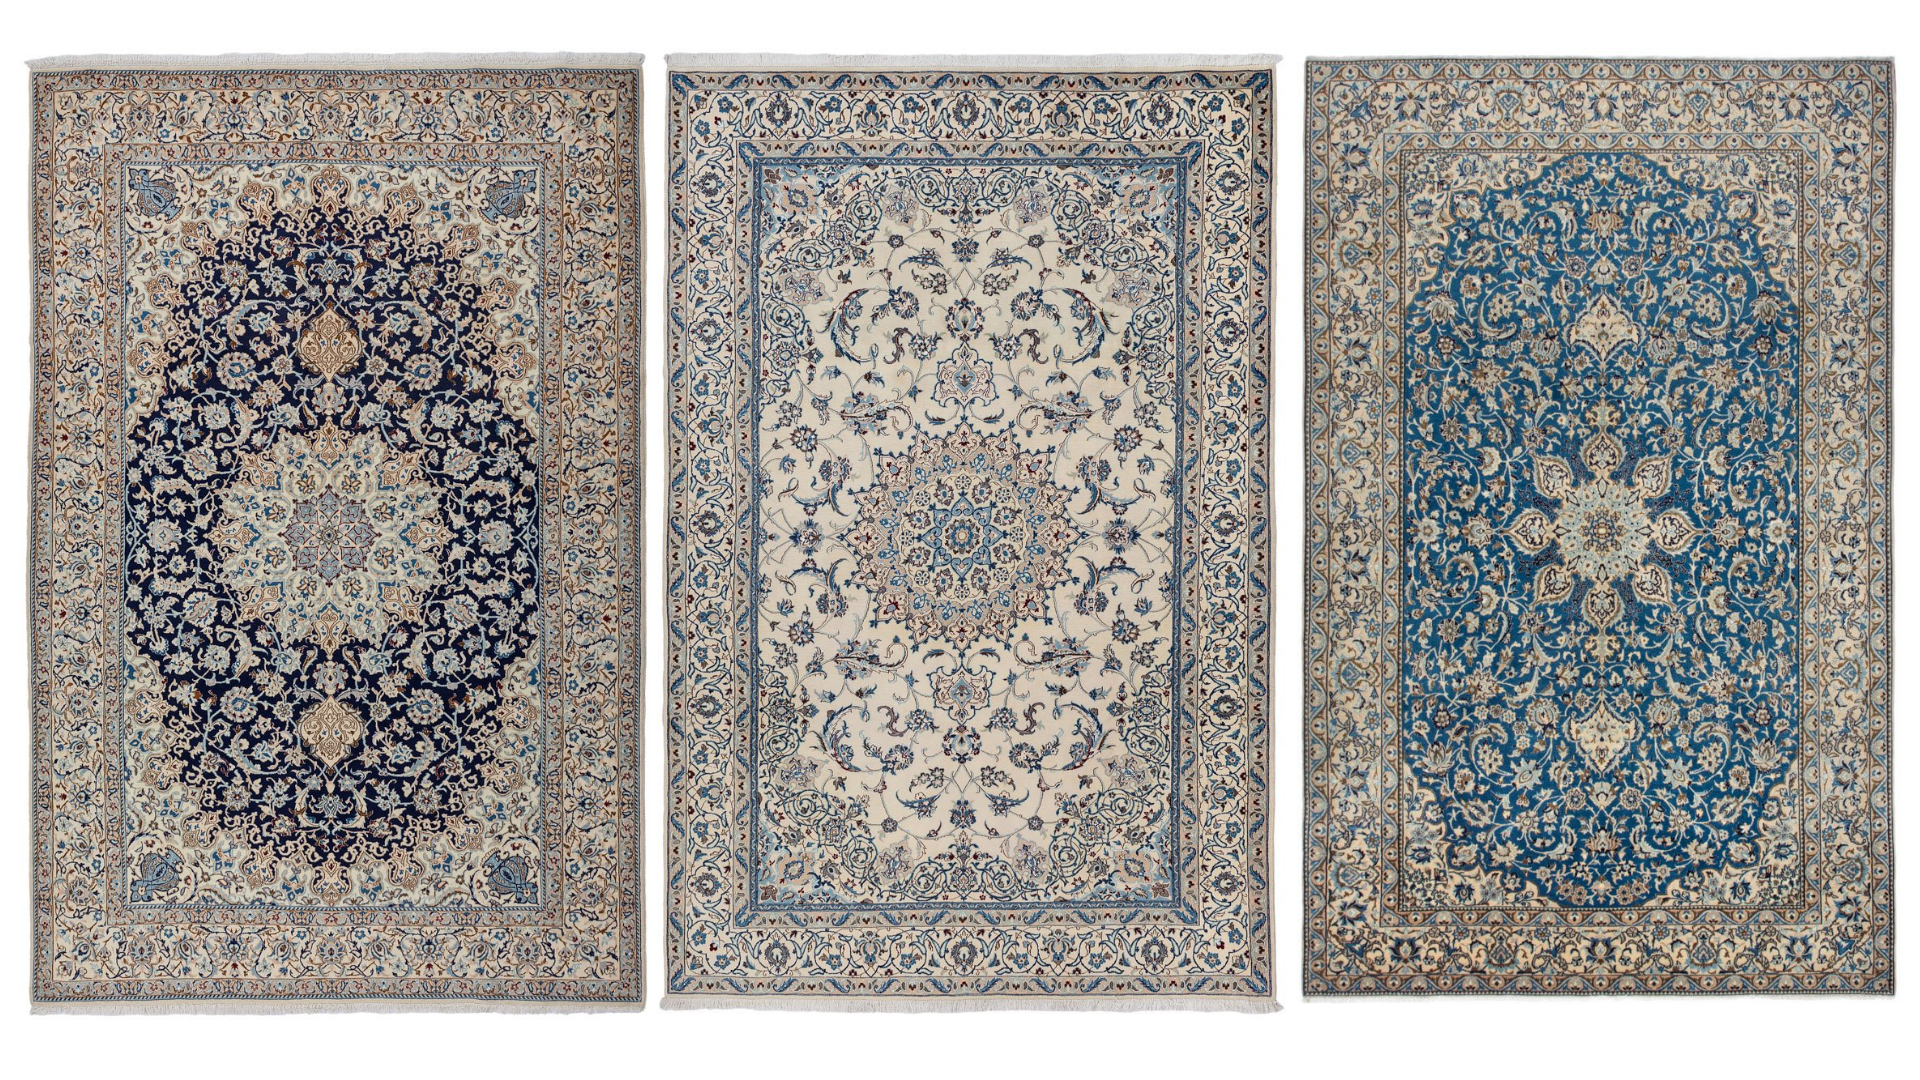 perisian rugs, oriental rugs, interior design, home accessories, home decor, zodiac signs, decor, interior designers, inspiration, autumn winter decor